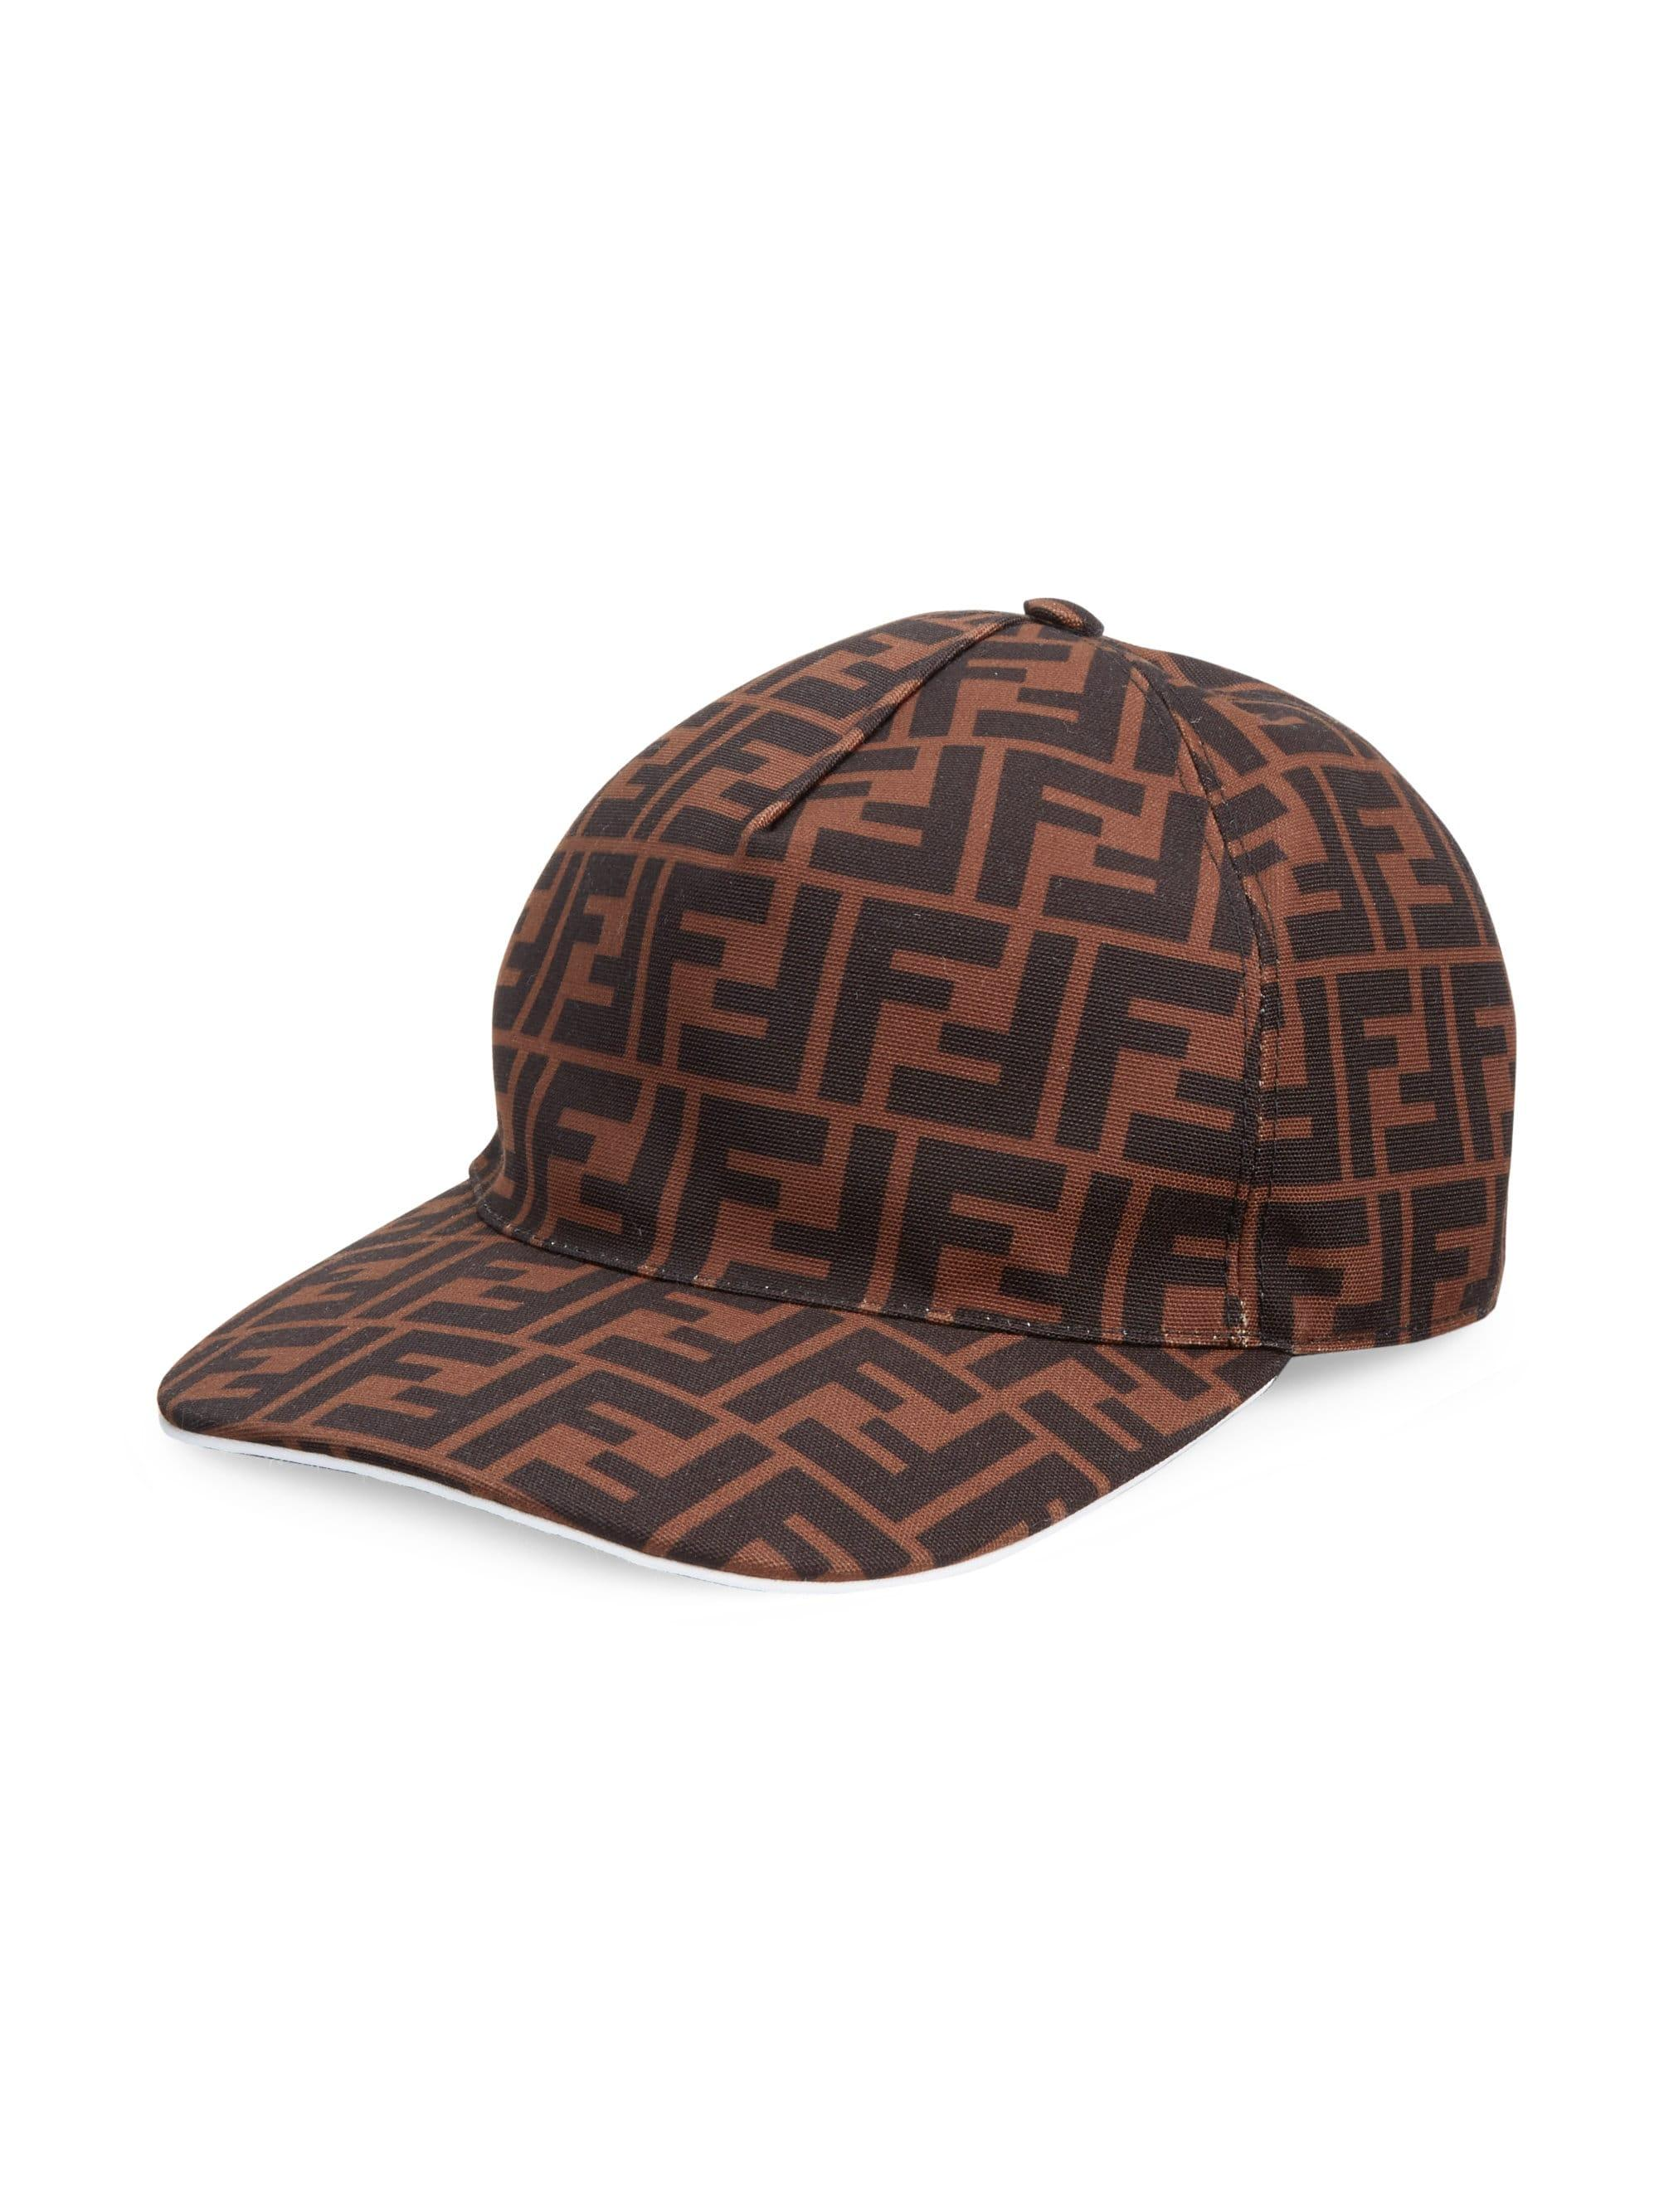 eaee47893fe Lyst - Fendi Logo Baseball Cap in Brown for Men